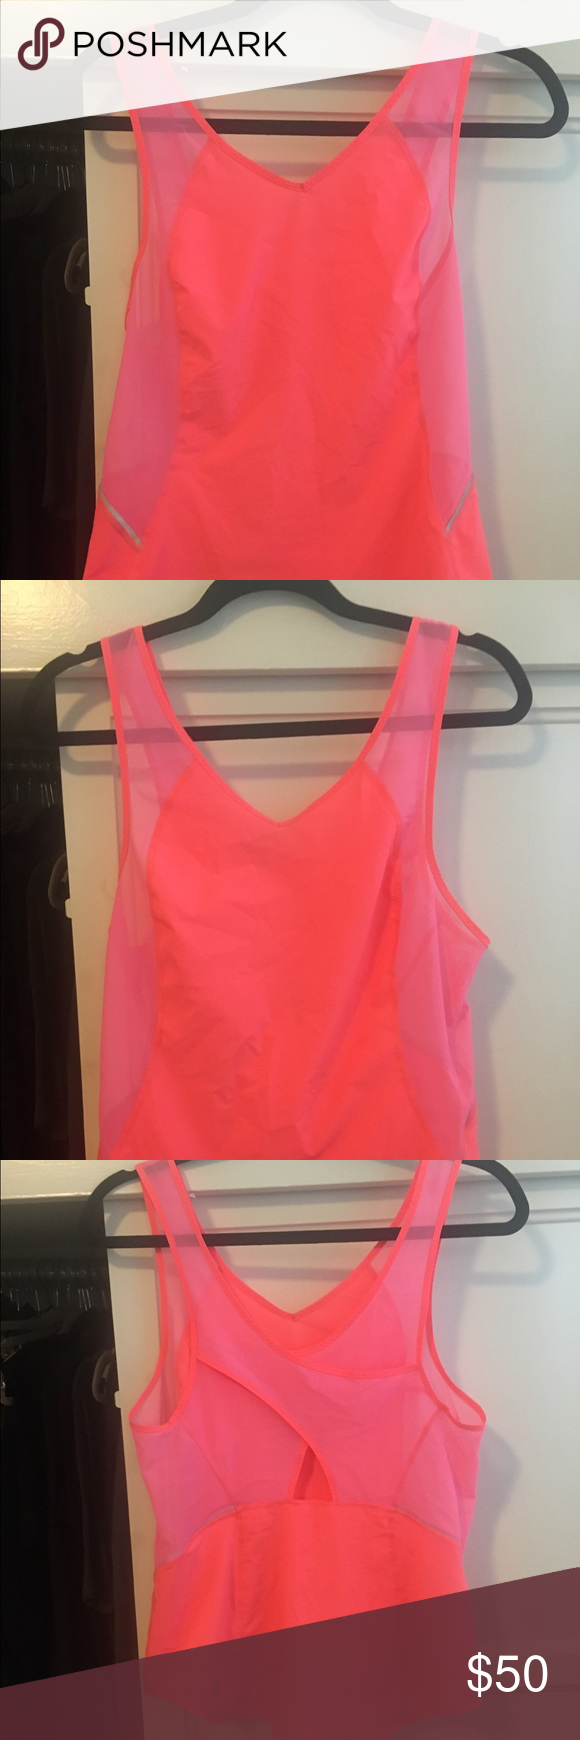 Lululemon run with sun tank Super cute hot pink tank from lululemon. Worn and washed less than 5 times. In really great shape. Size 6. lululemon athletica Tops Tank Tops